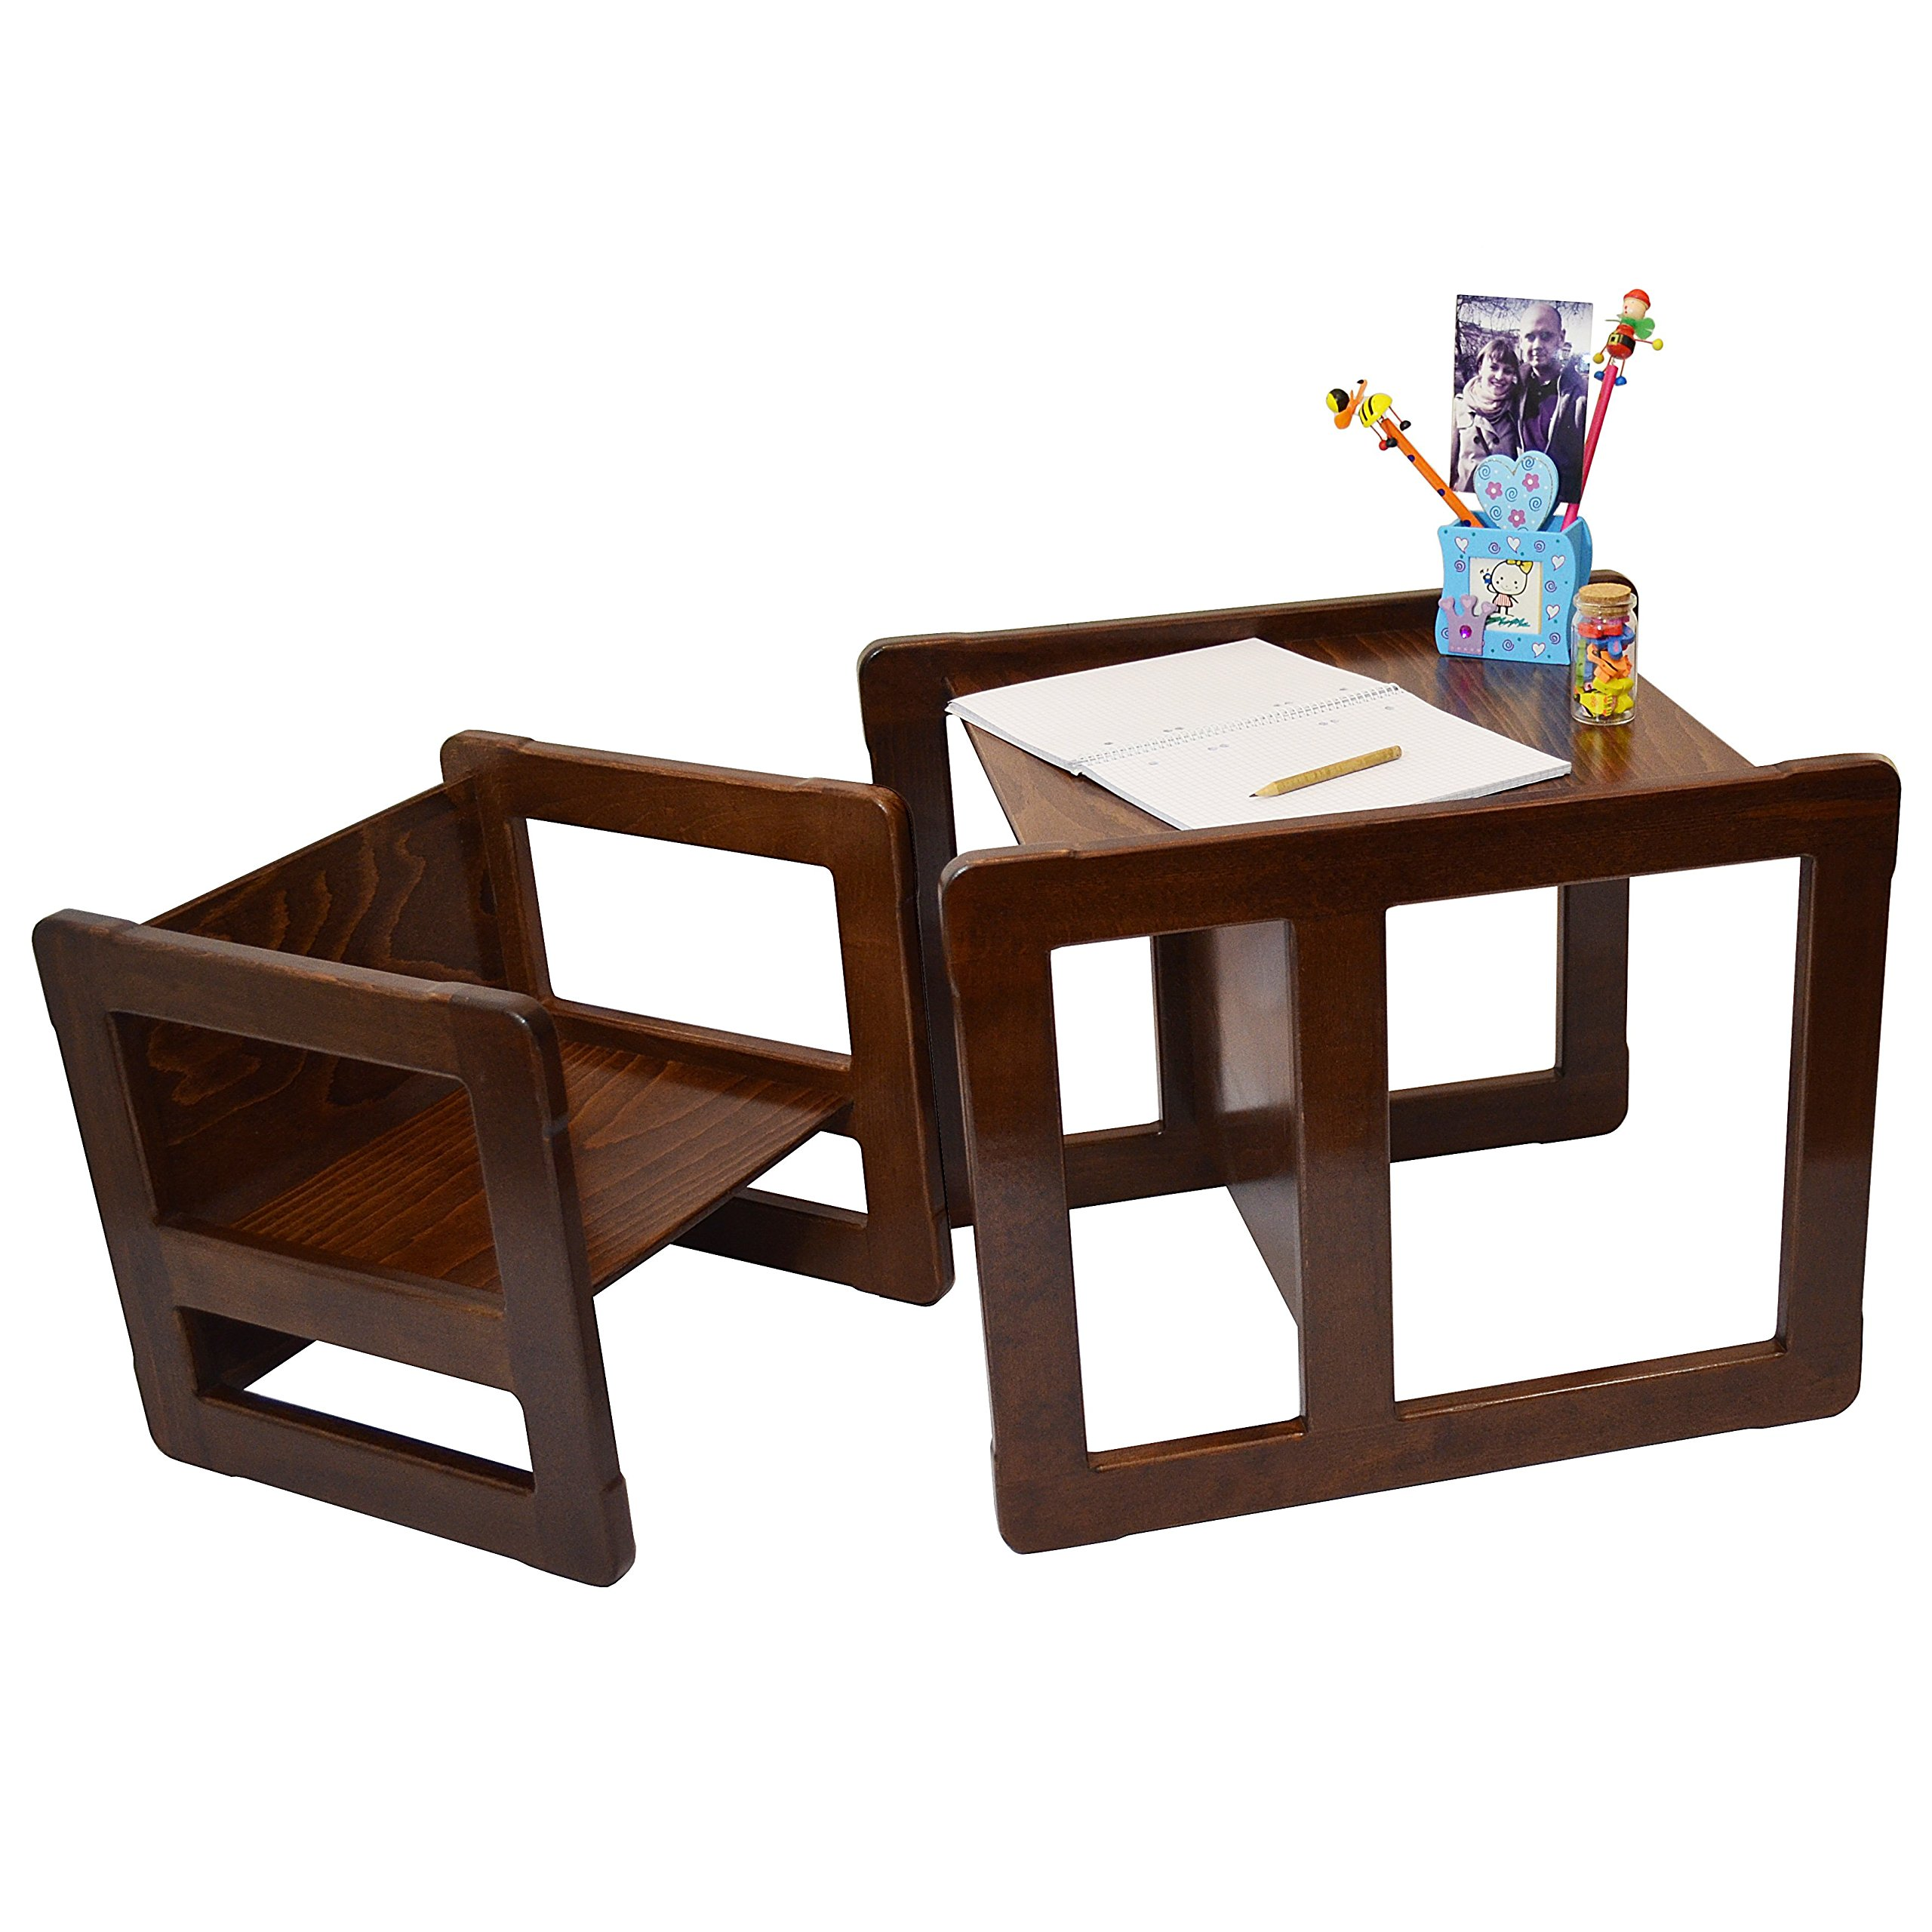 3 in 1 Childrens Multifunctional Furniture Set of 2, One Small Chair or Table and One Large Chair or Table Beech Wood, Dark Stained by Obique Ltd (Image #1)